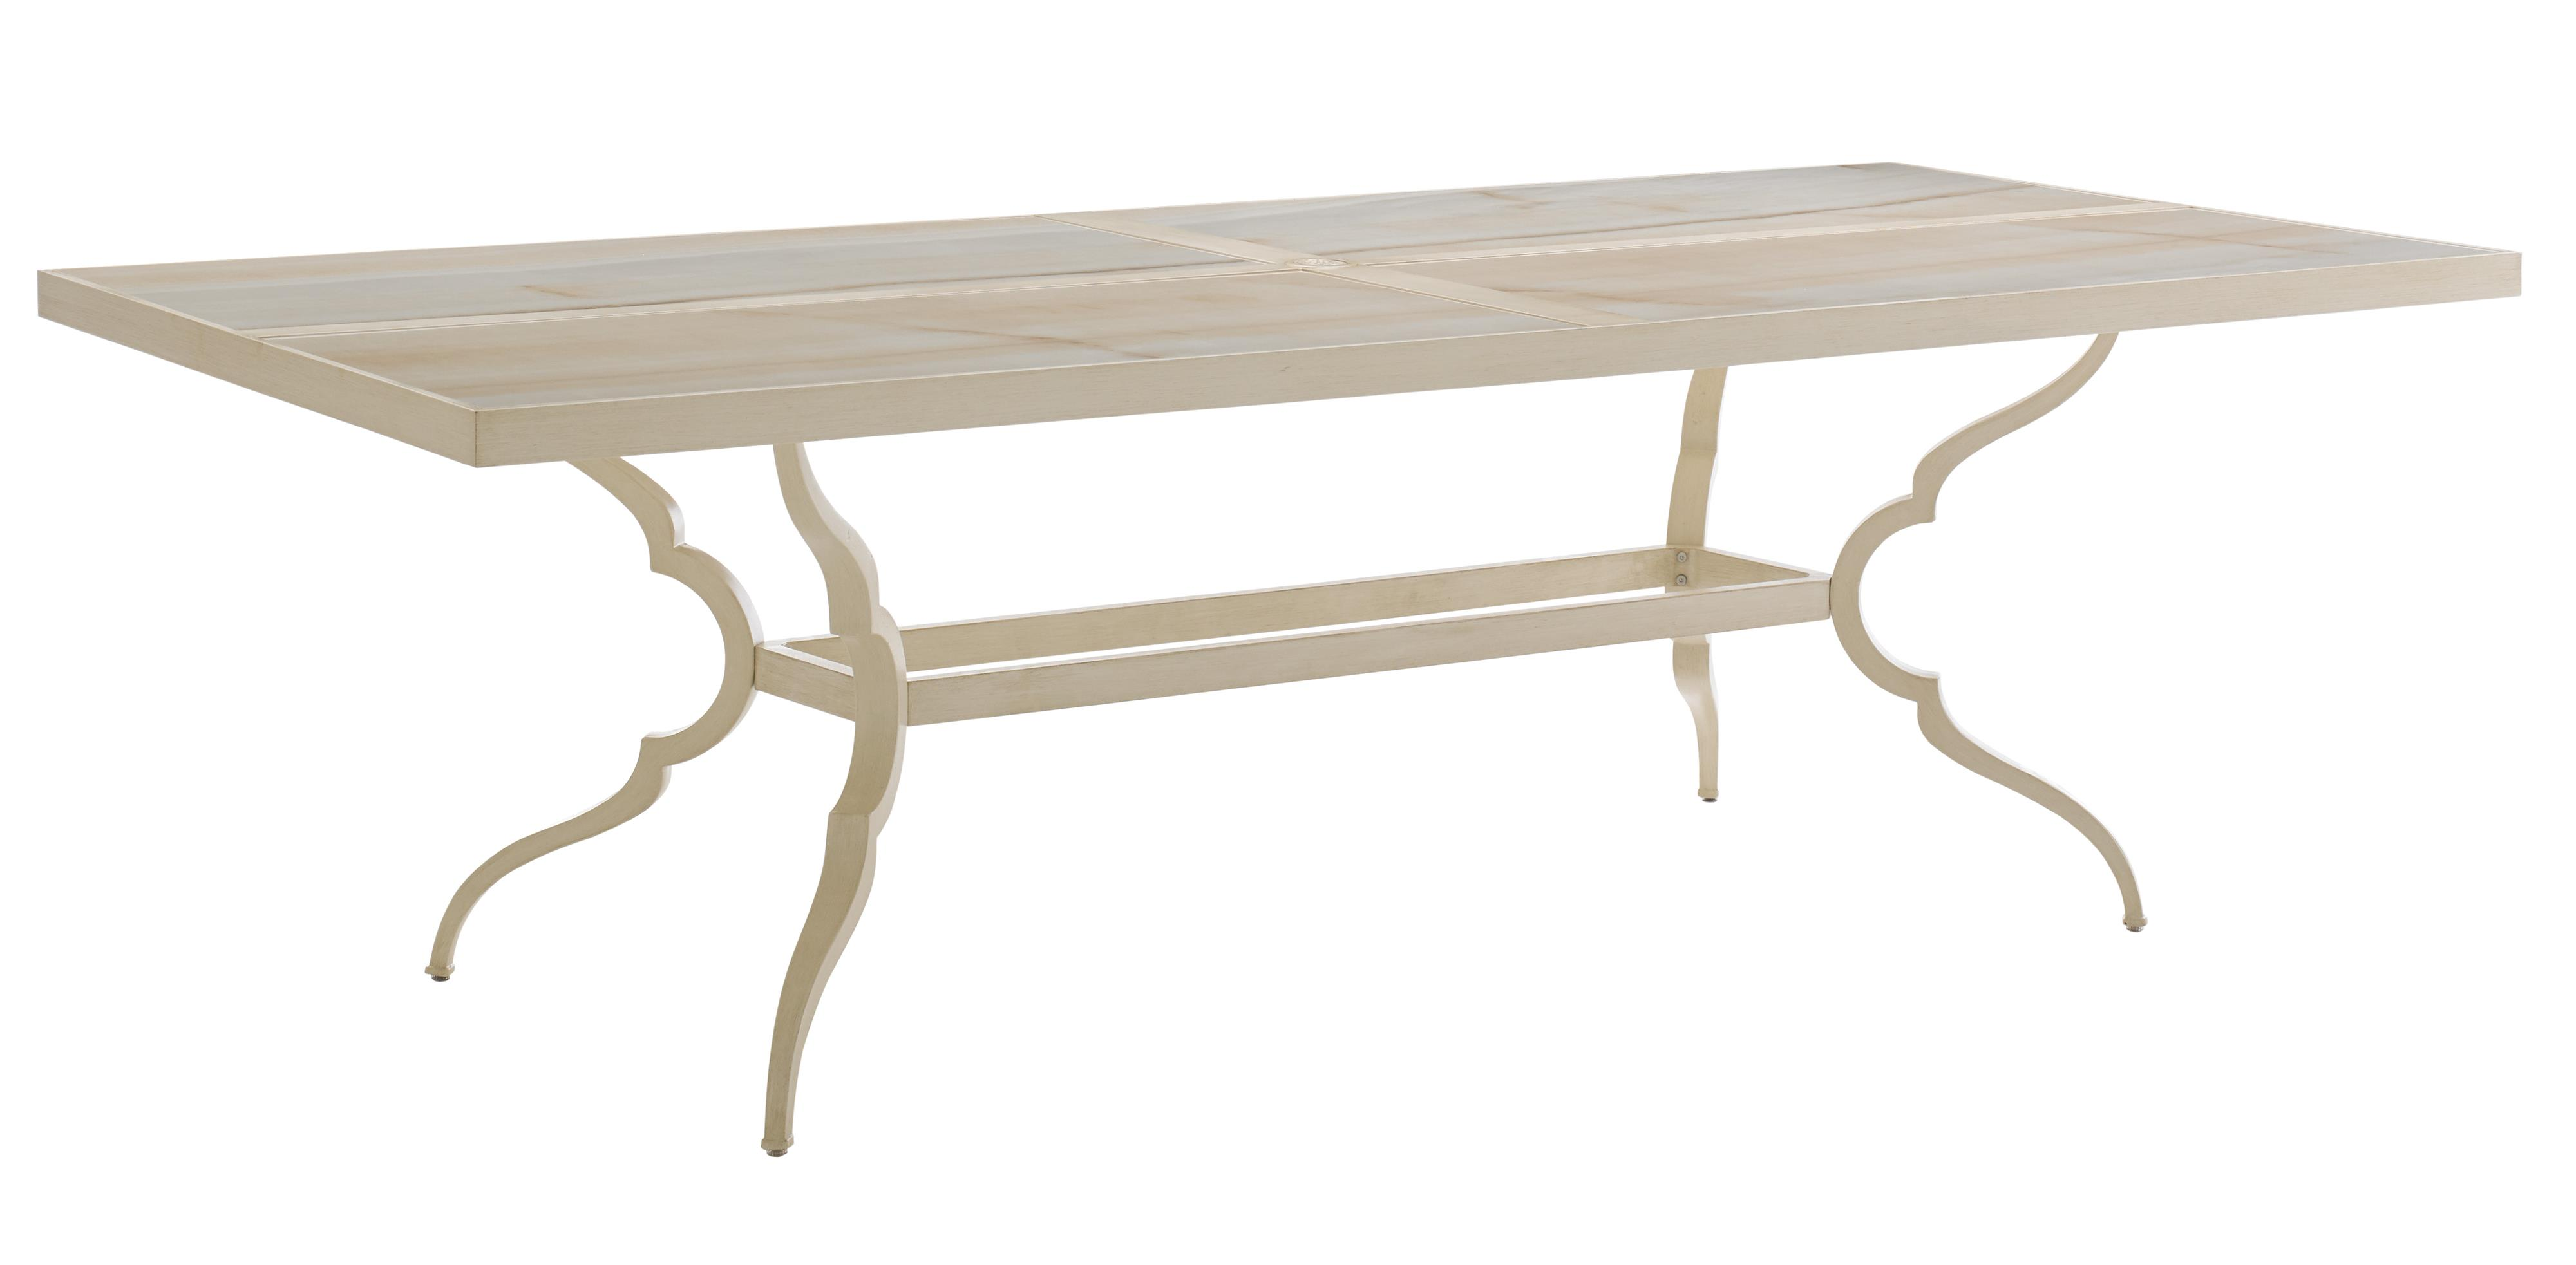 Misty Garden Rectangular Dining Table w/ Porcelain Top by Tommy Bahama Outdoor Living at Baer's Furniture